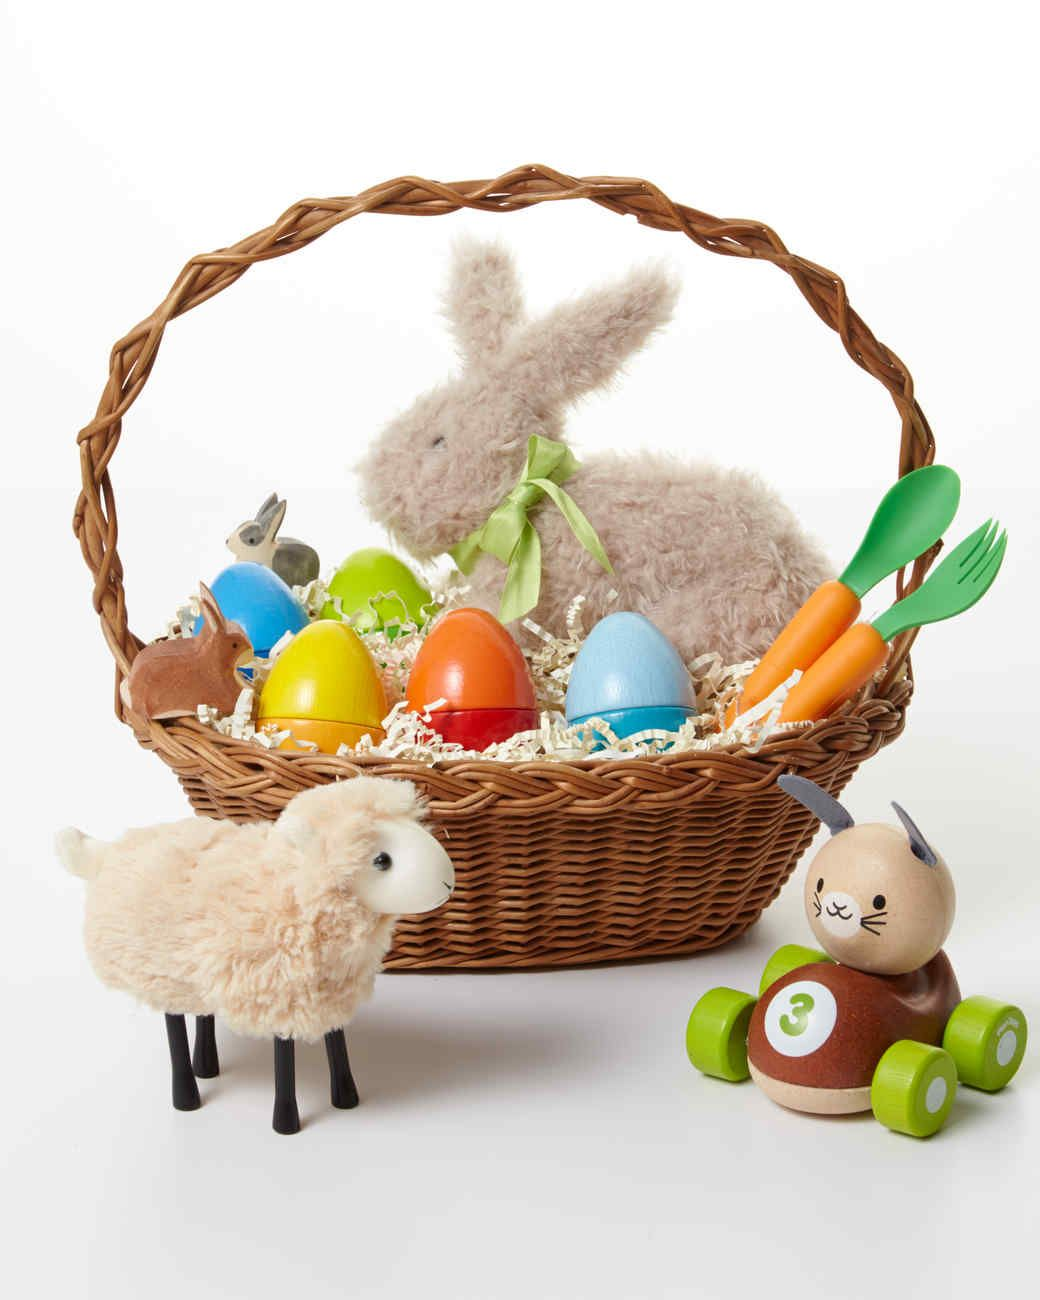 What About A Small Child These Toys Are Better Than Candy And For Your Little One Wind Up To Musical Eggs Carrot Spoon Fork Set